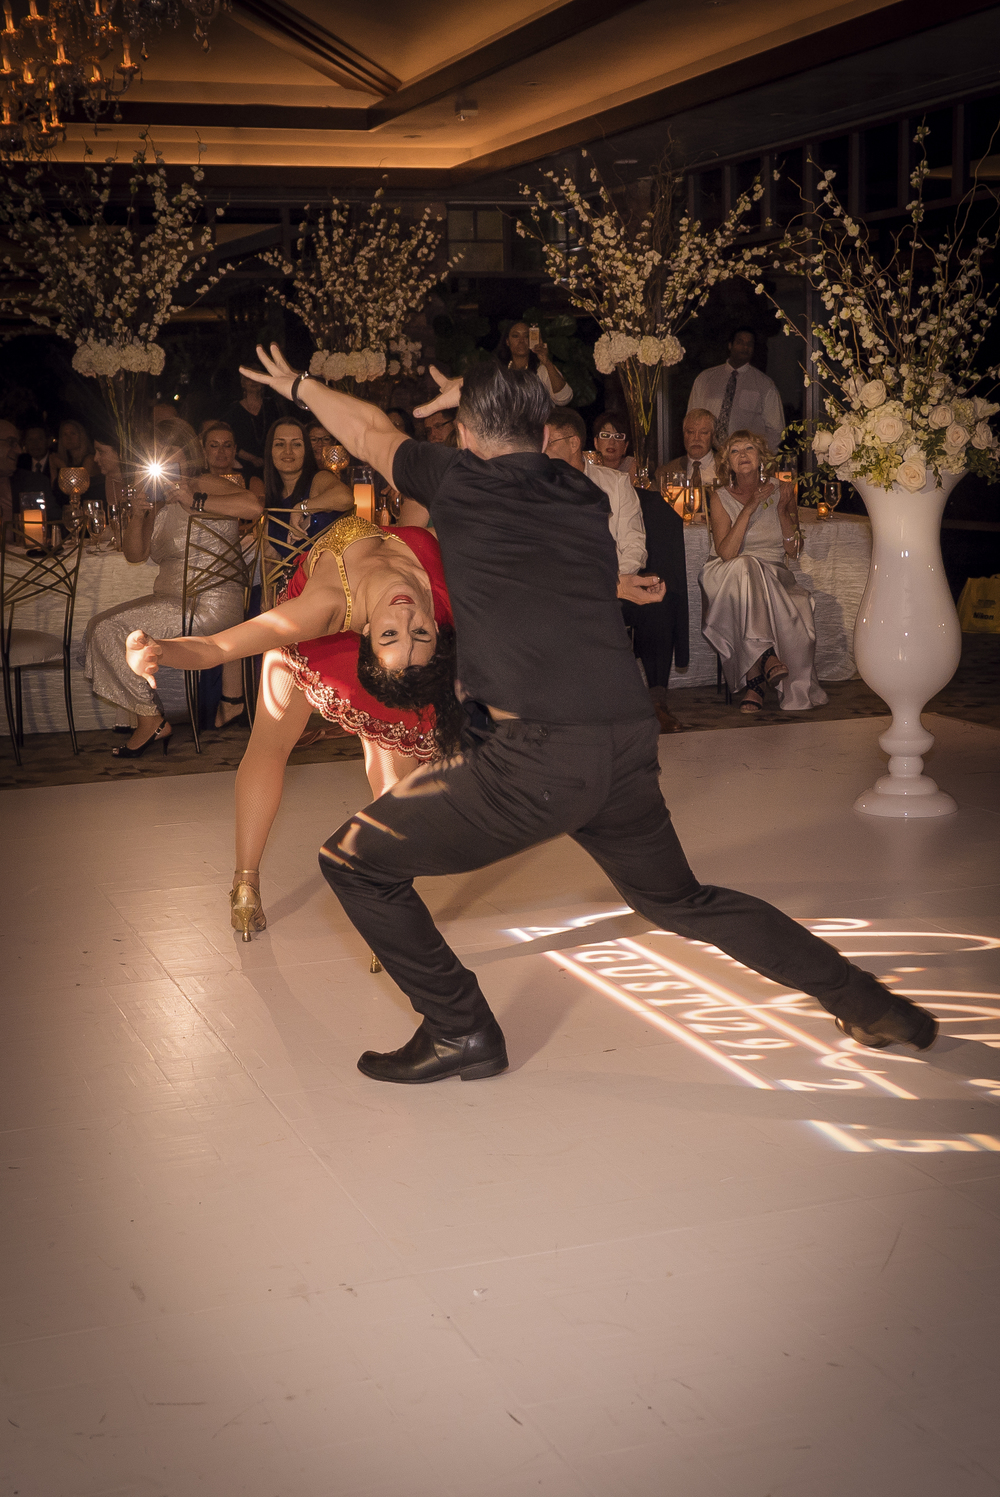 The Hora Loca is a traditional Cuban dance meant to keep the party going and bring guests to the dance floor.  Las Vegas Wedding Planner Andrea Eppolito planned this wedding at Red Rock Country Club. By Dzign handled the decor shot by wedding photographer Ella Gagiano.